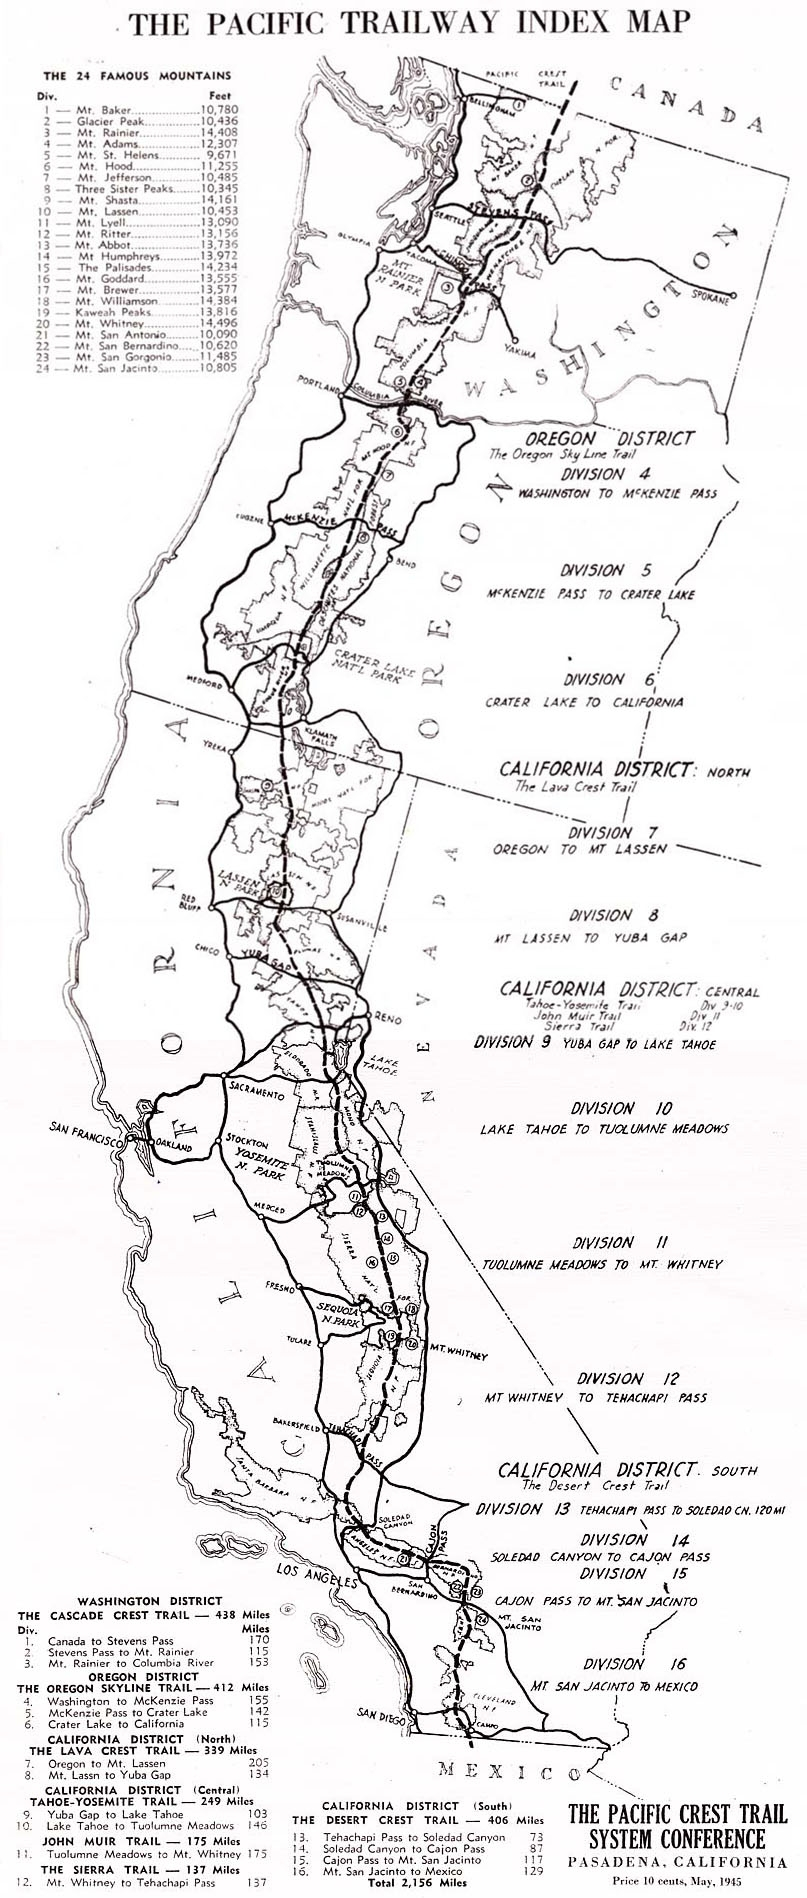 1945 Map of the Pacific Crest Trail found in Clinton C. Clarke's book, Pacific Crest Trailway